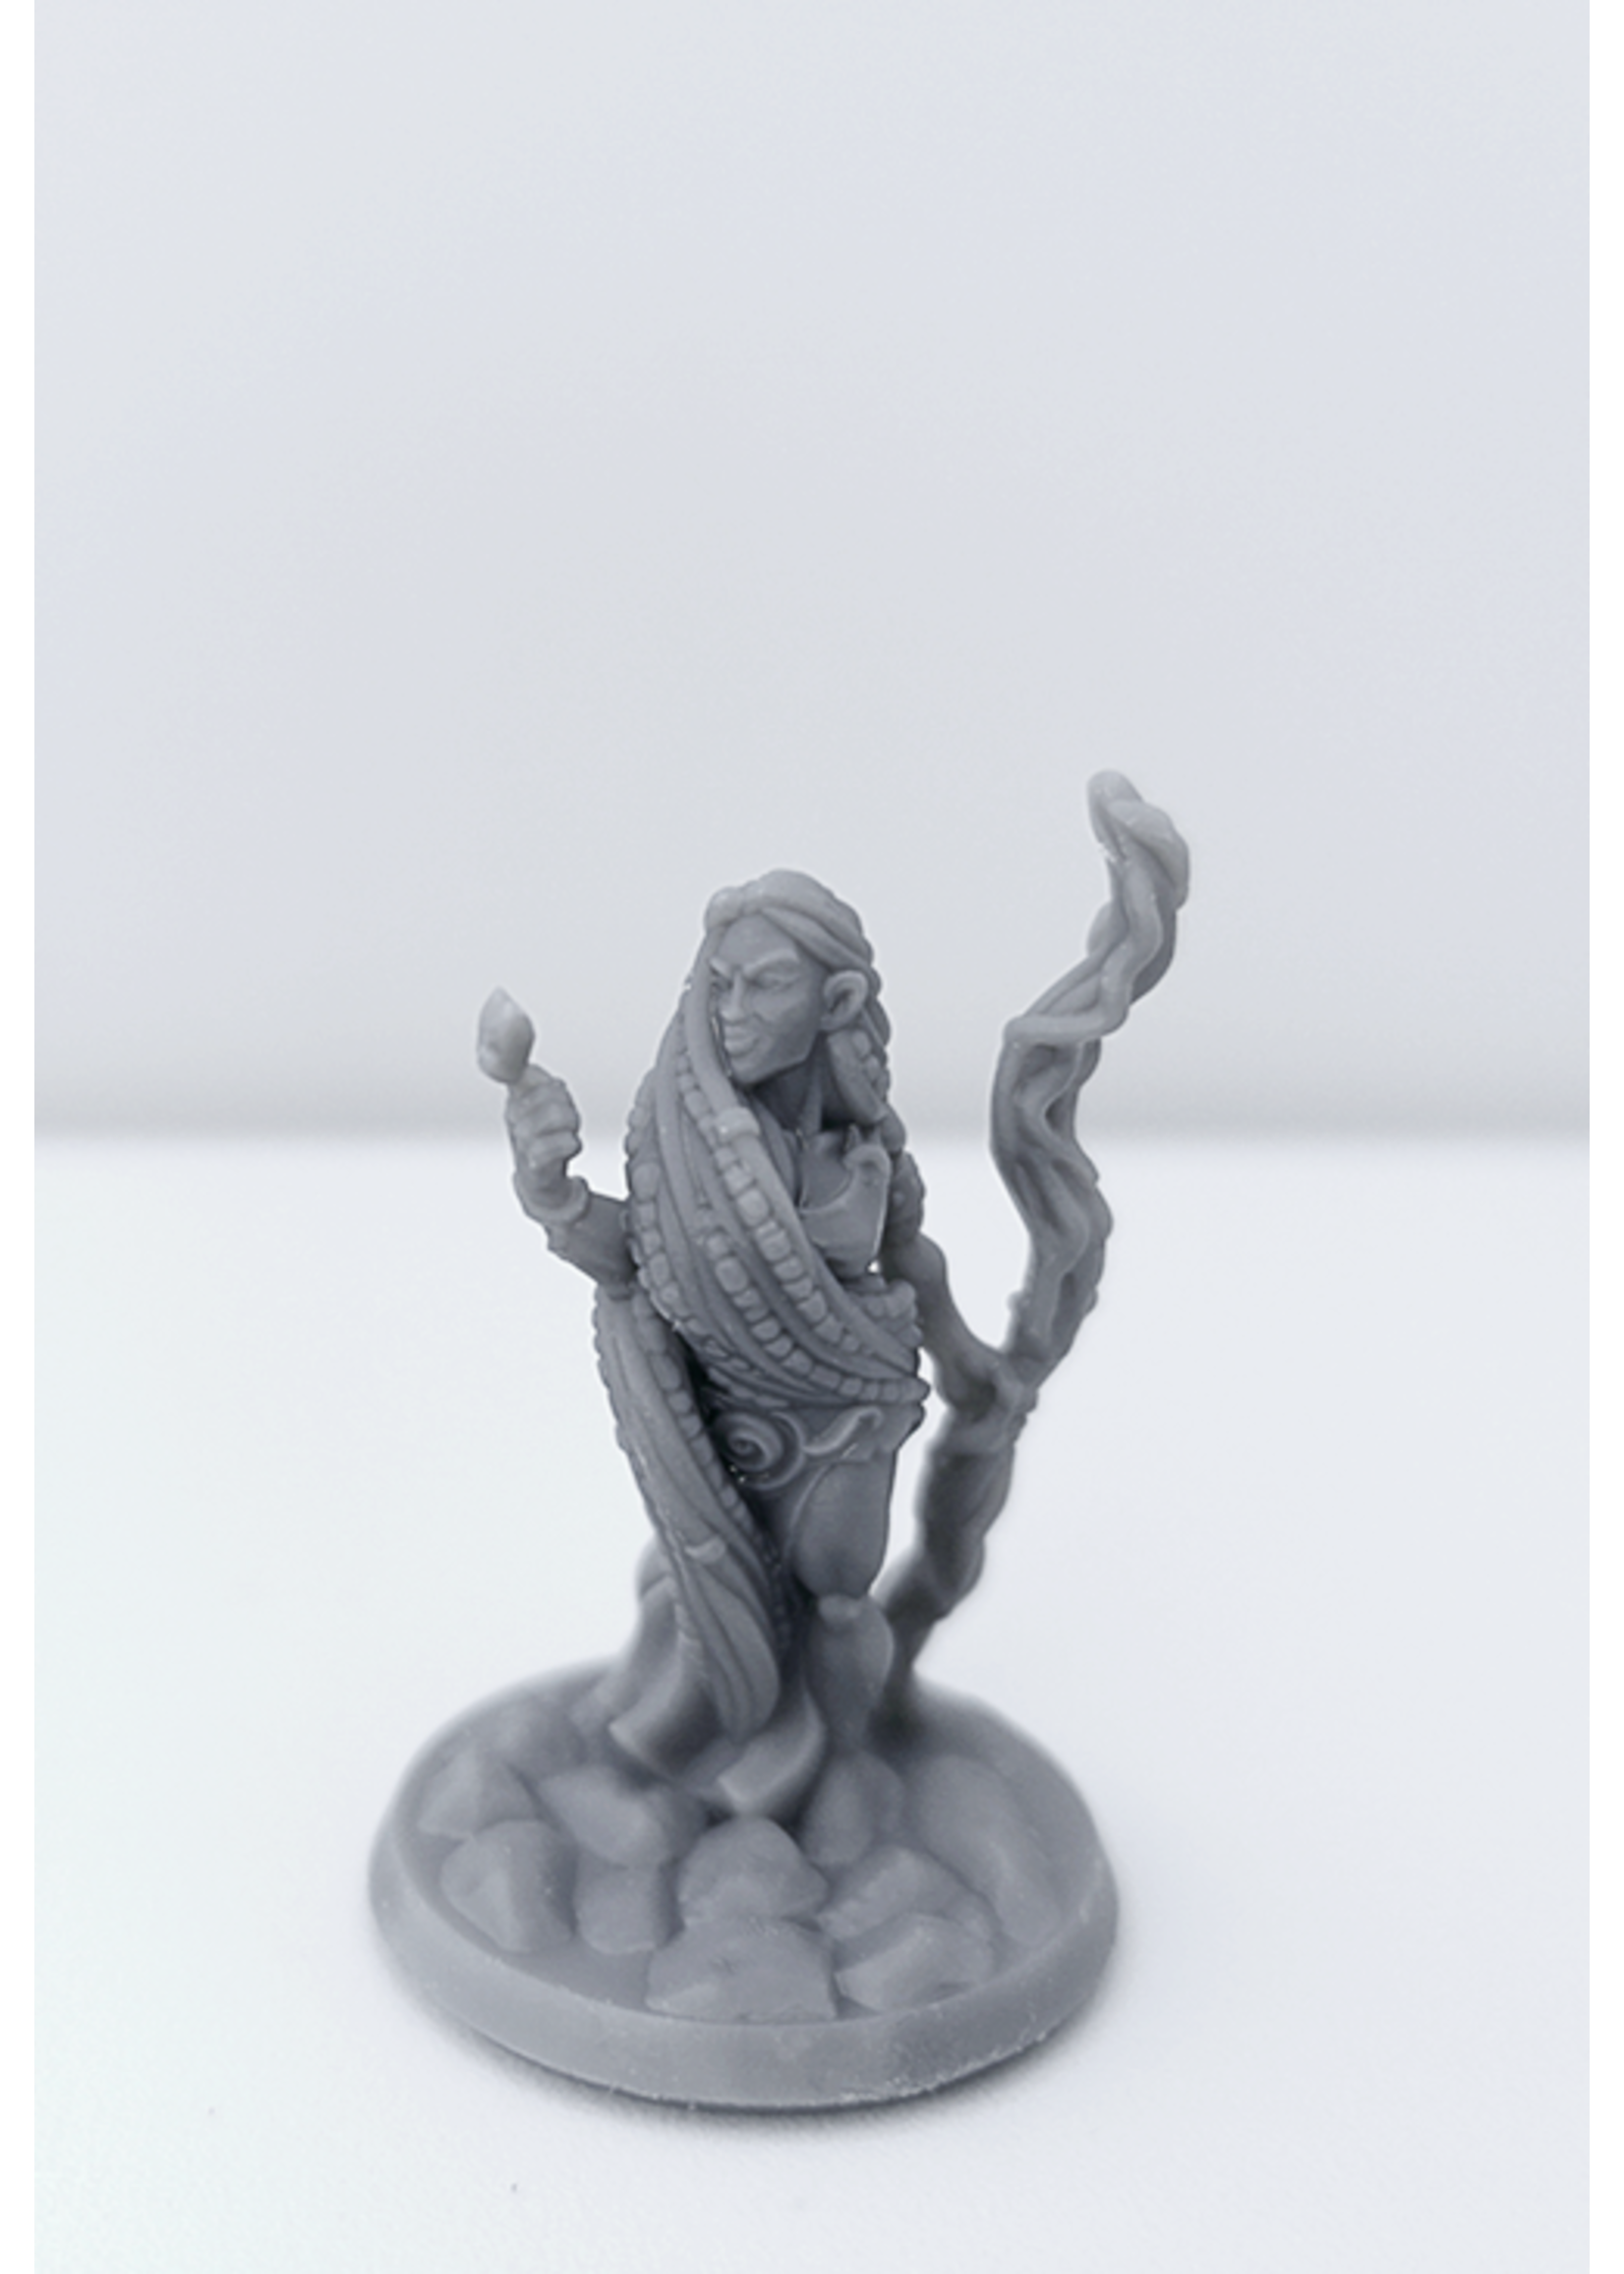 3D Printed Miniature - Druid Female 01 - Dungeons & Dragons - Hero of the Realm KS